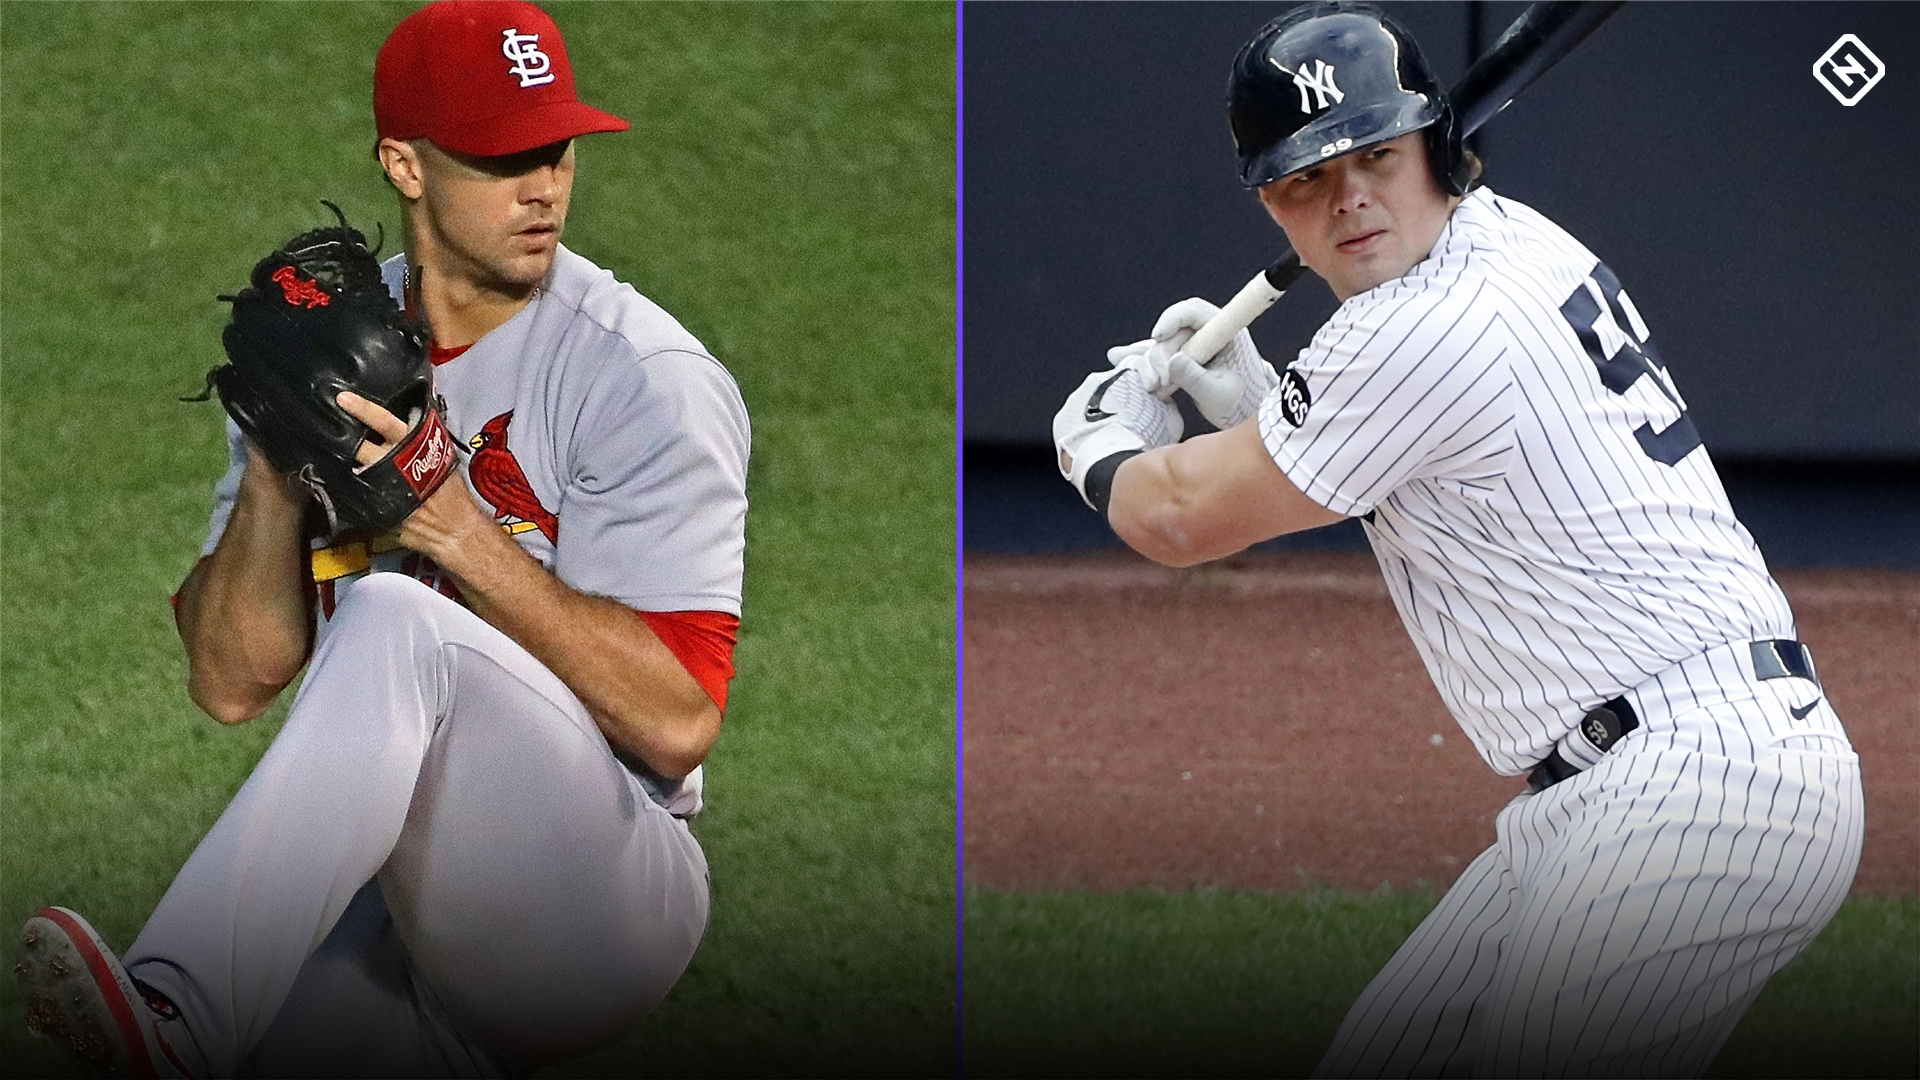 Fantasy Baseball Draft Strategy: Tips, advice for dominating in snake drafts